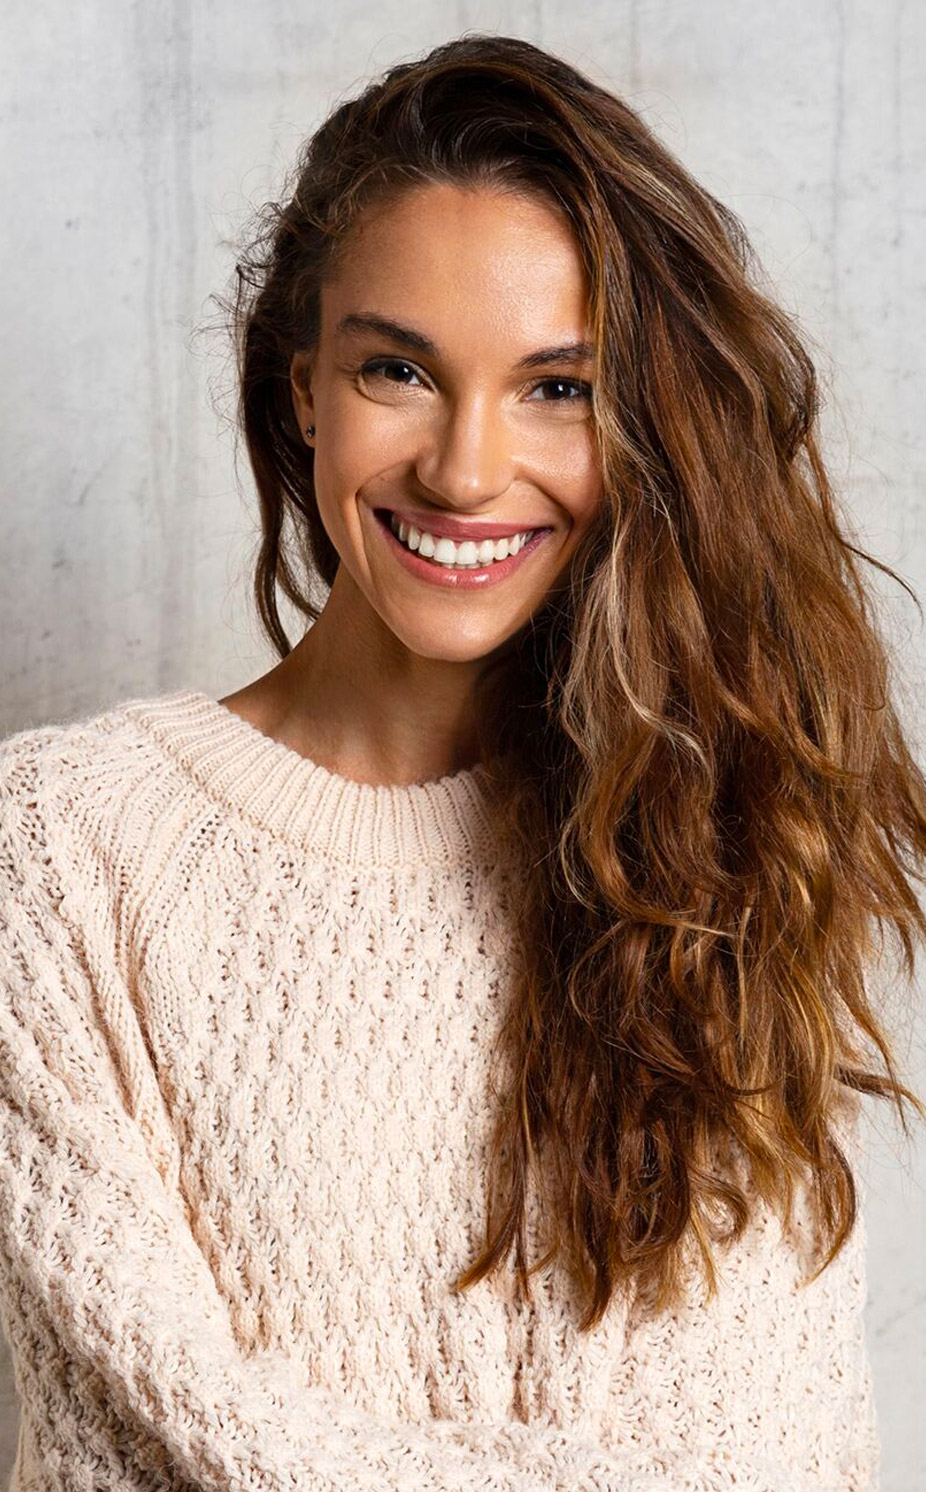 woman smiling in a sweater